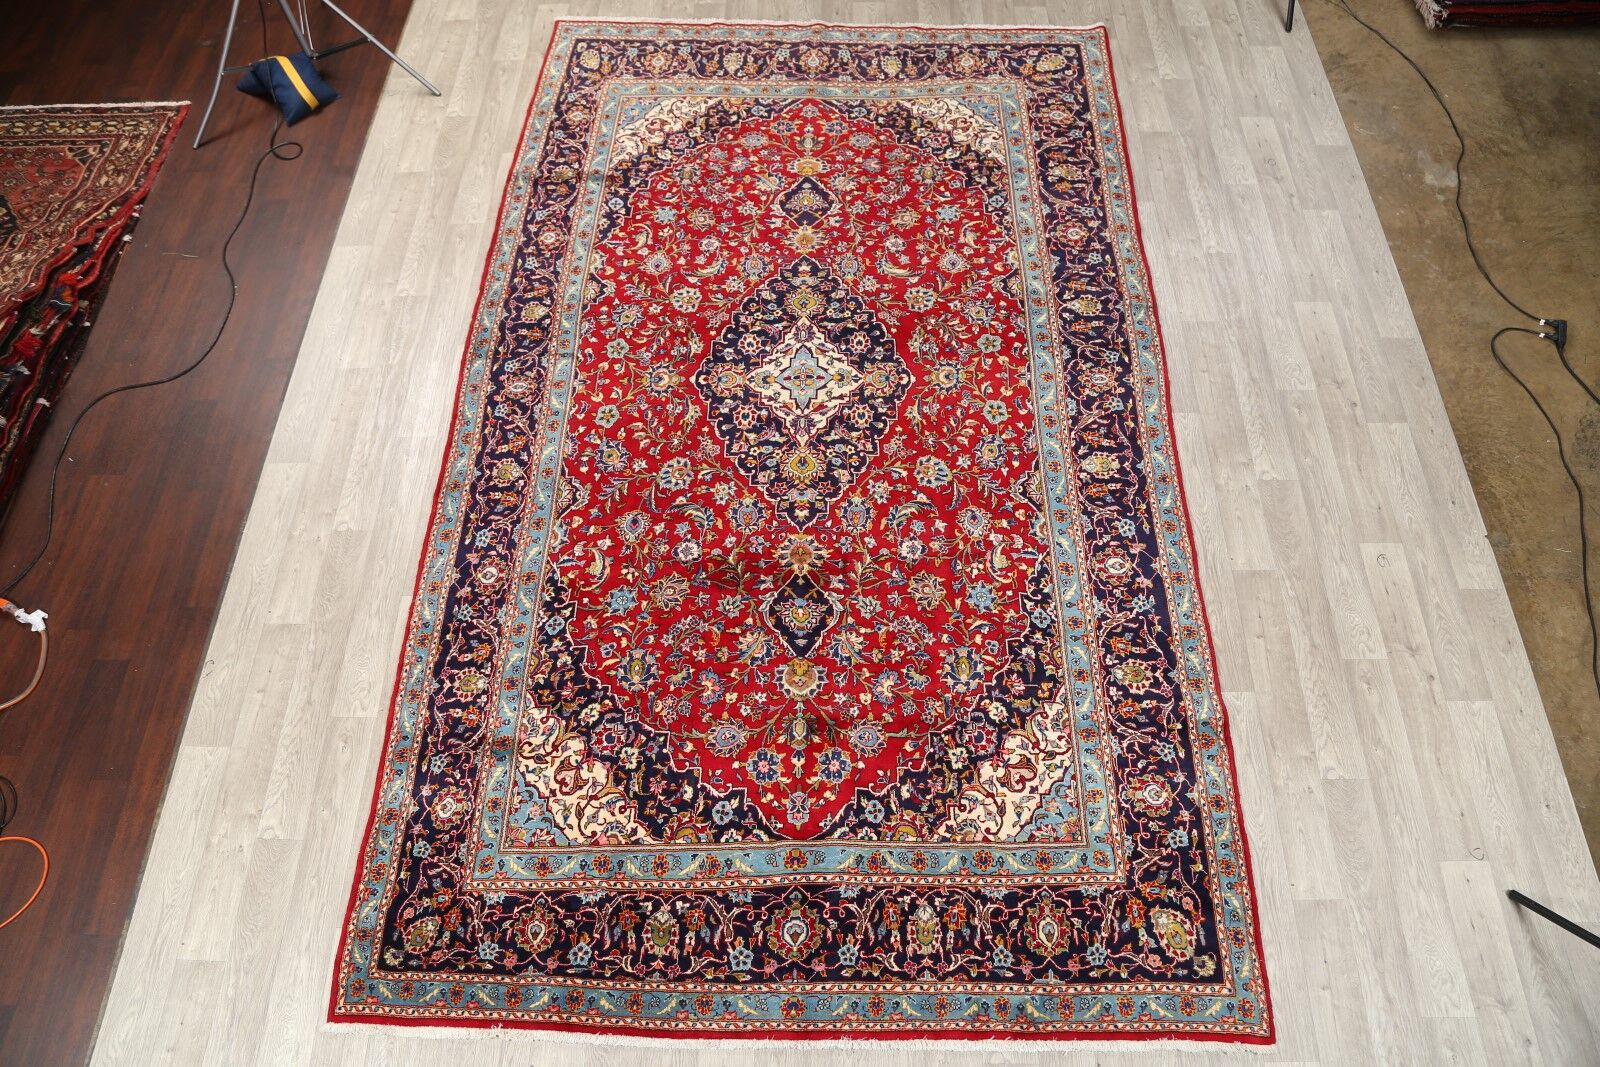 One-of-a-Kind Kashan Persian Classical Vintage Hand-Knotted 7'11